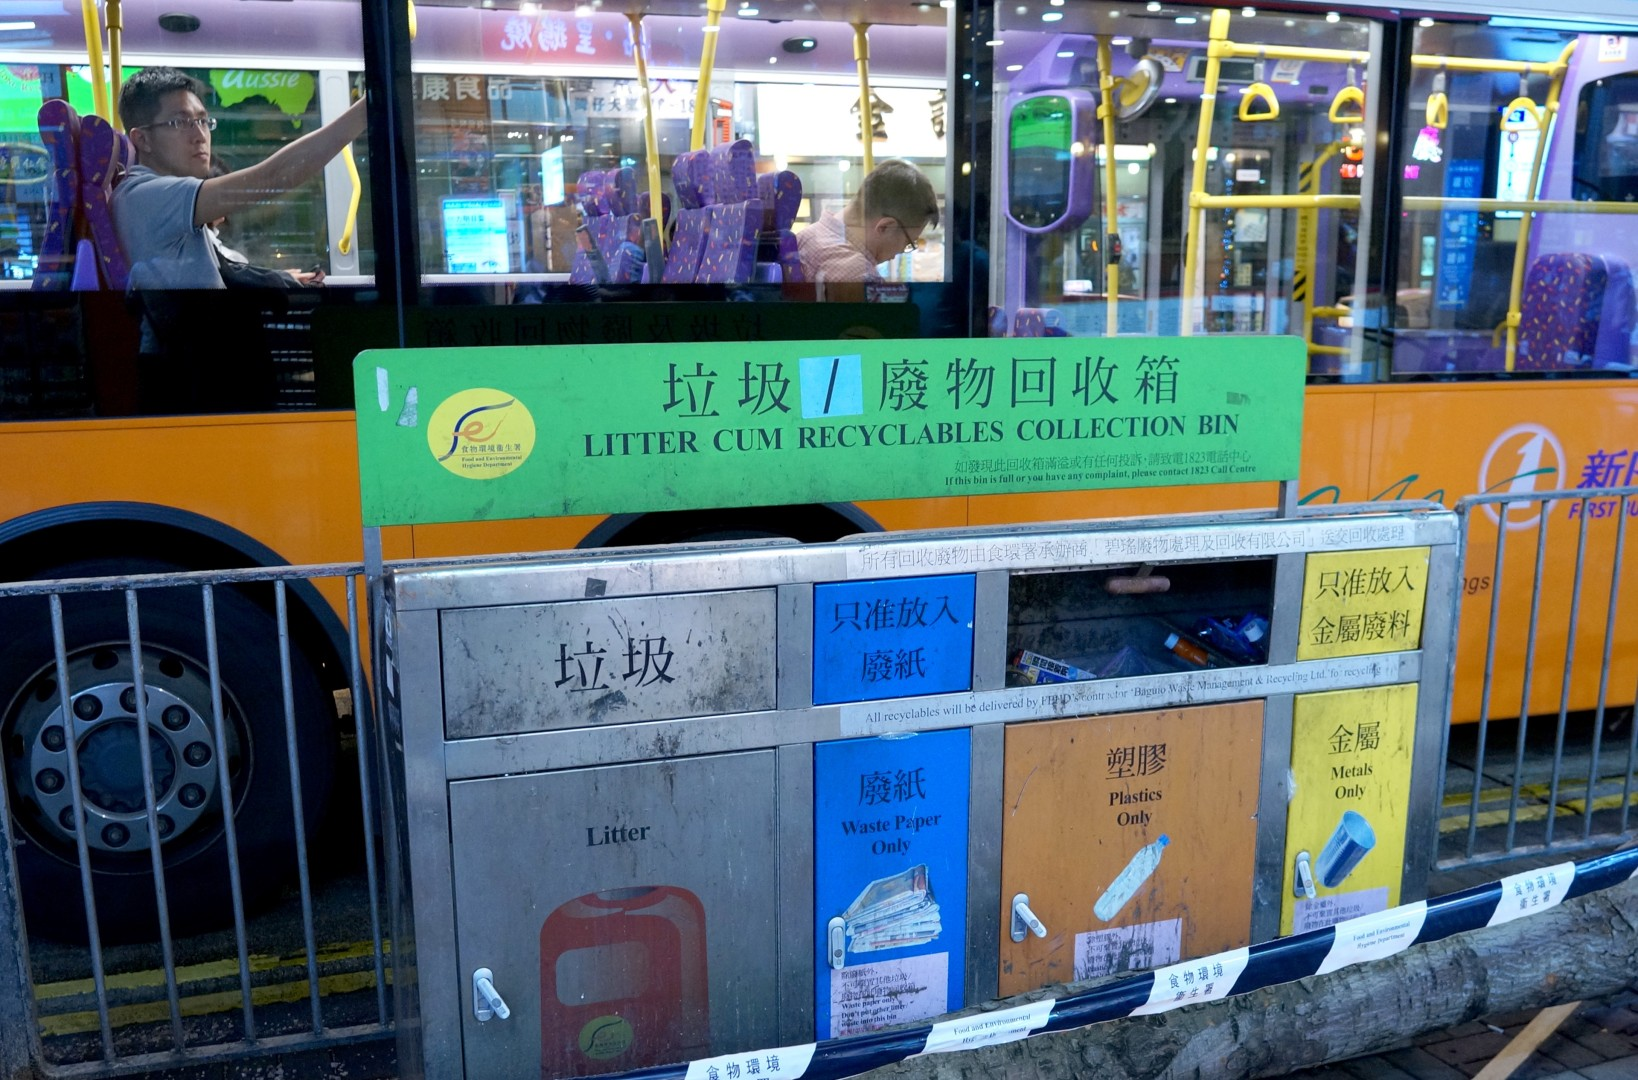 Hong Kong recycling bins: ugly, often messy and hardly fit